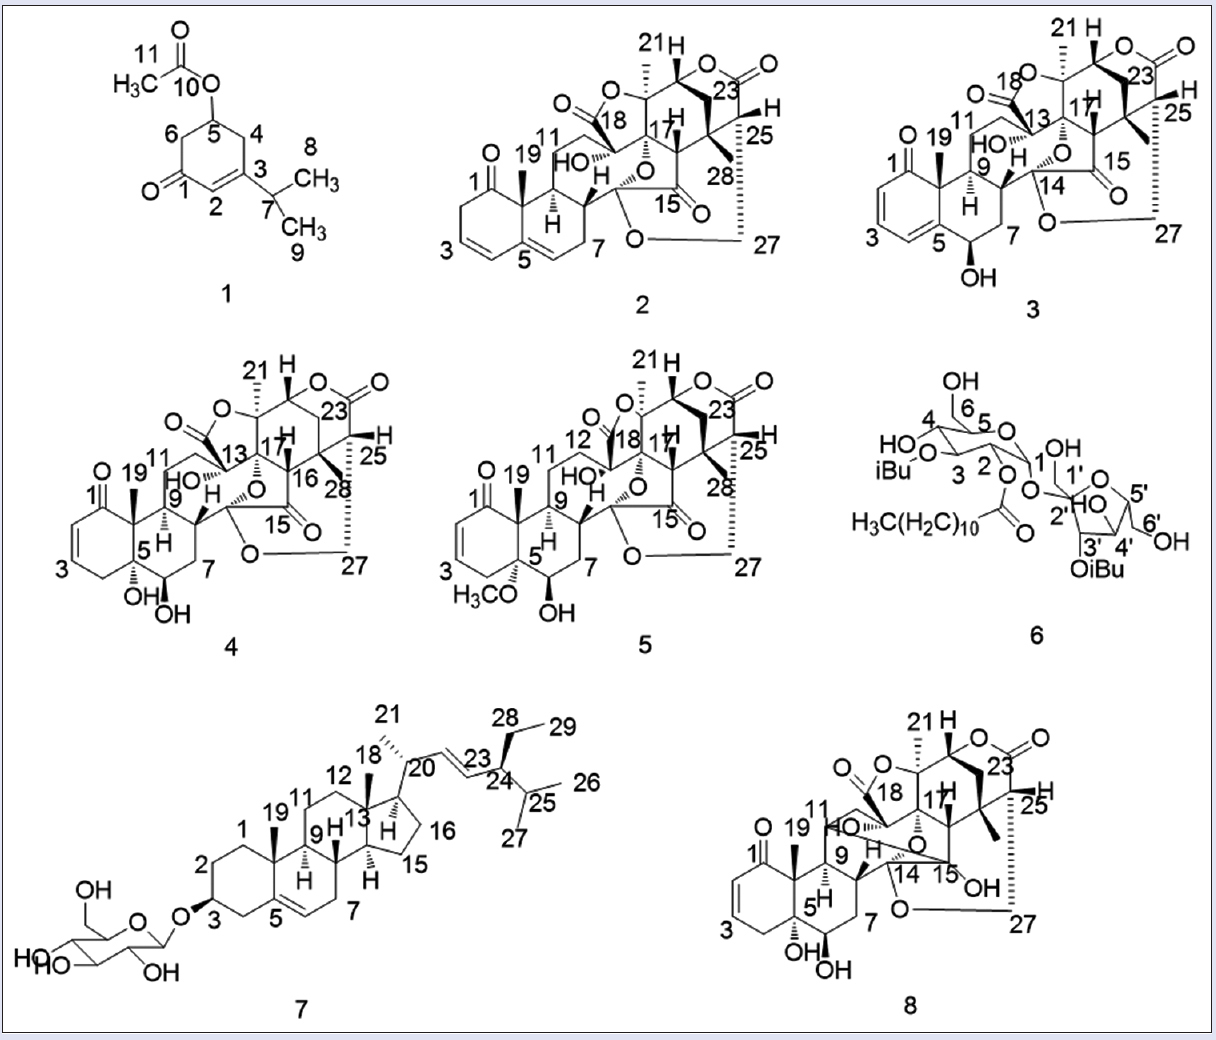 Figure 3: The structures of compounds 1-8